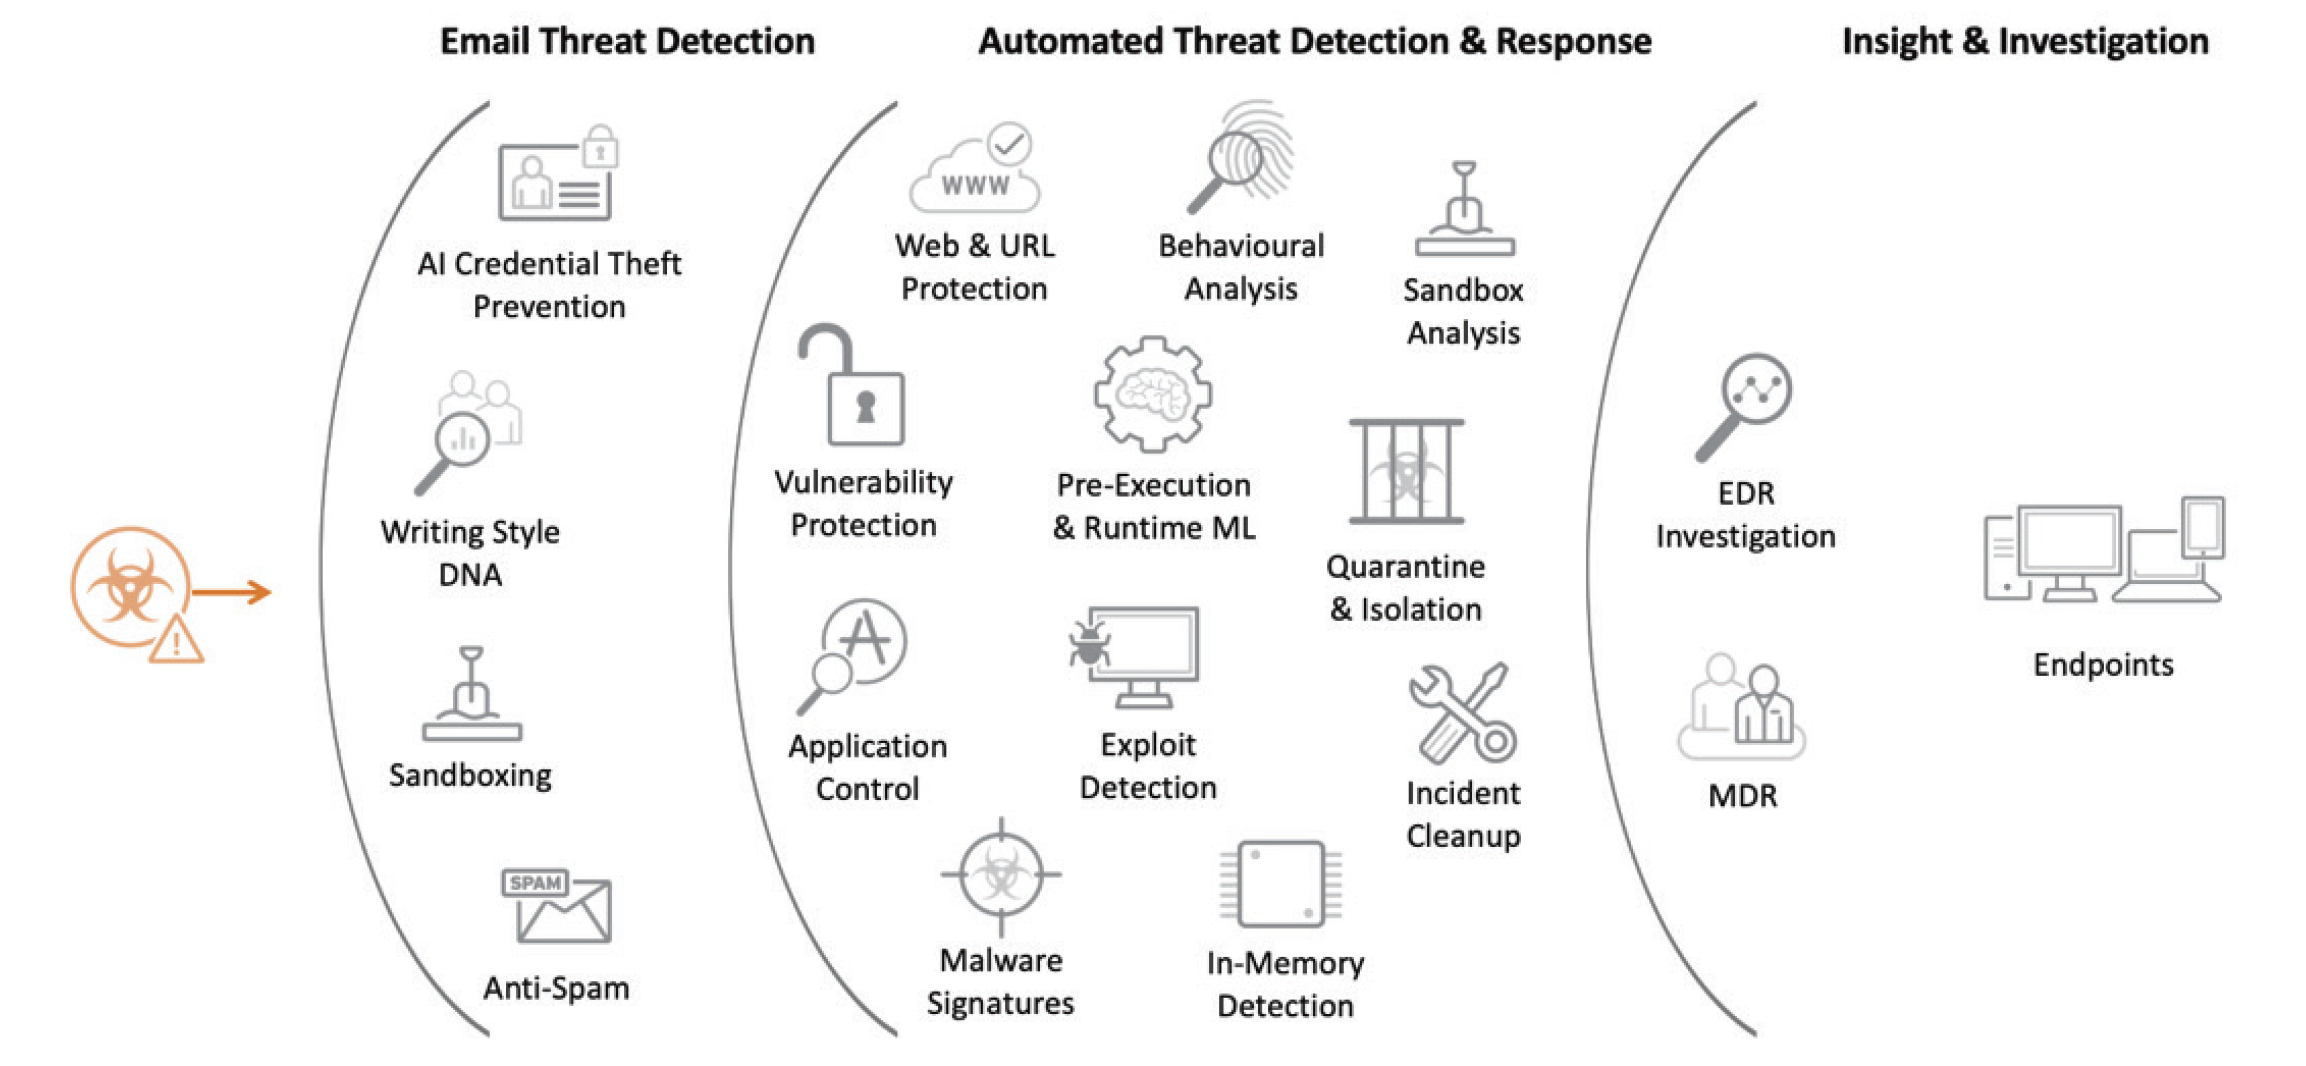 Trend Micro has consistently anticipated shifts in user behavior and environments to deliver a comprehensive solution for protecting endpoints and email.